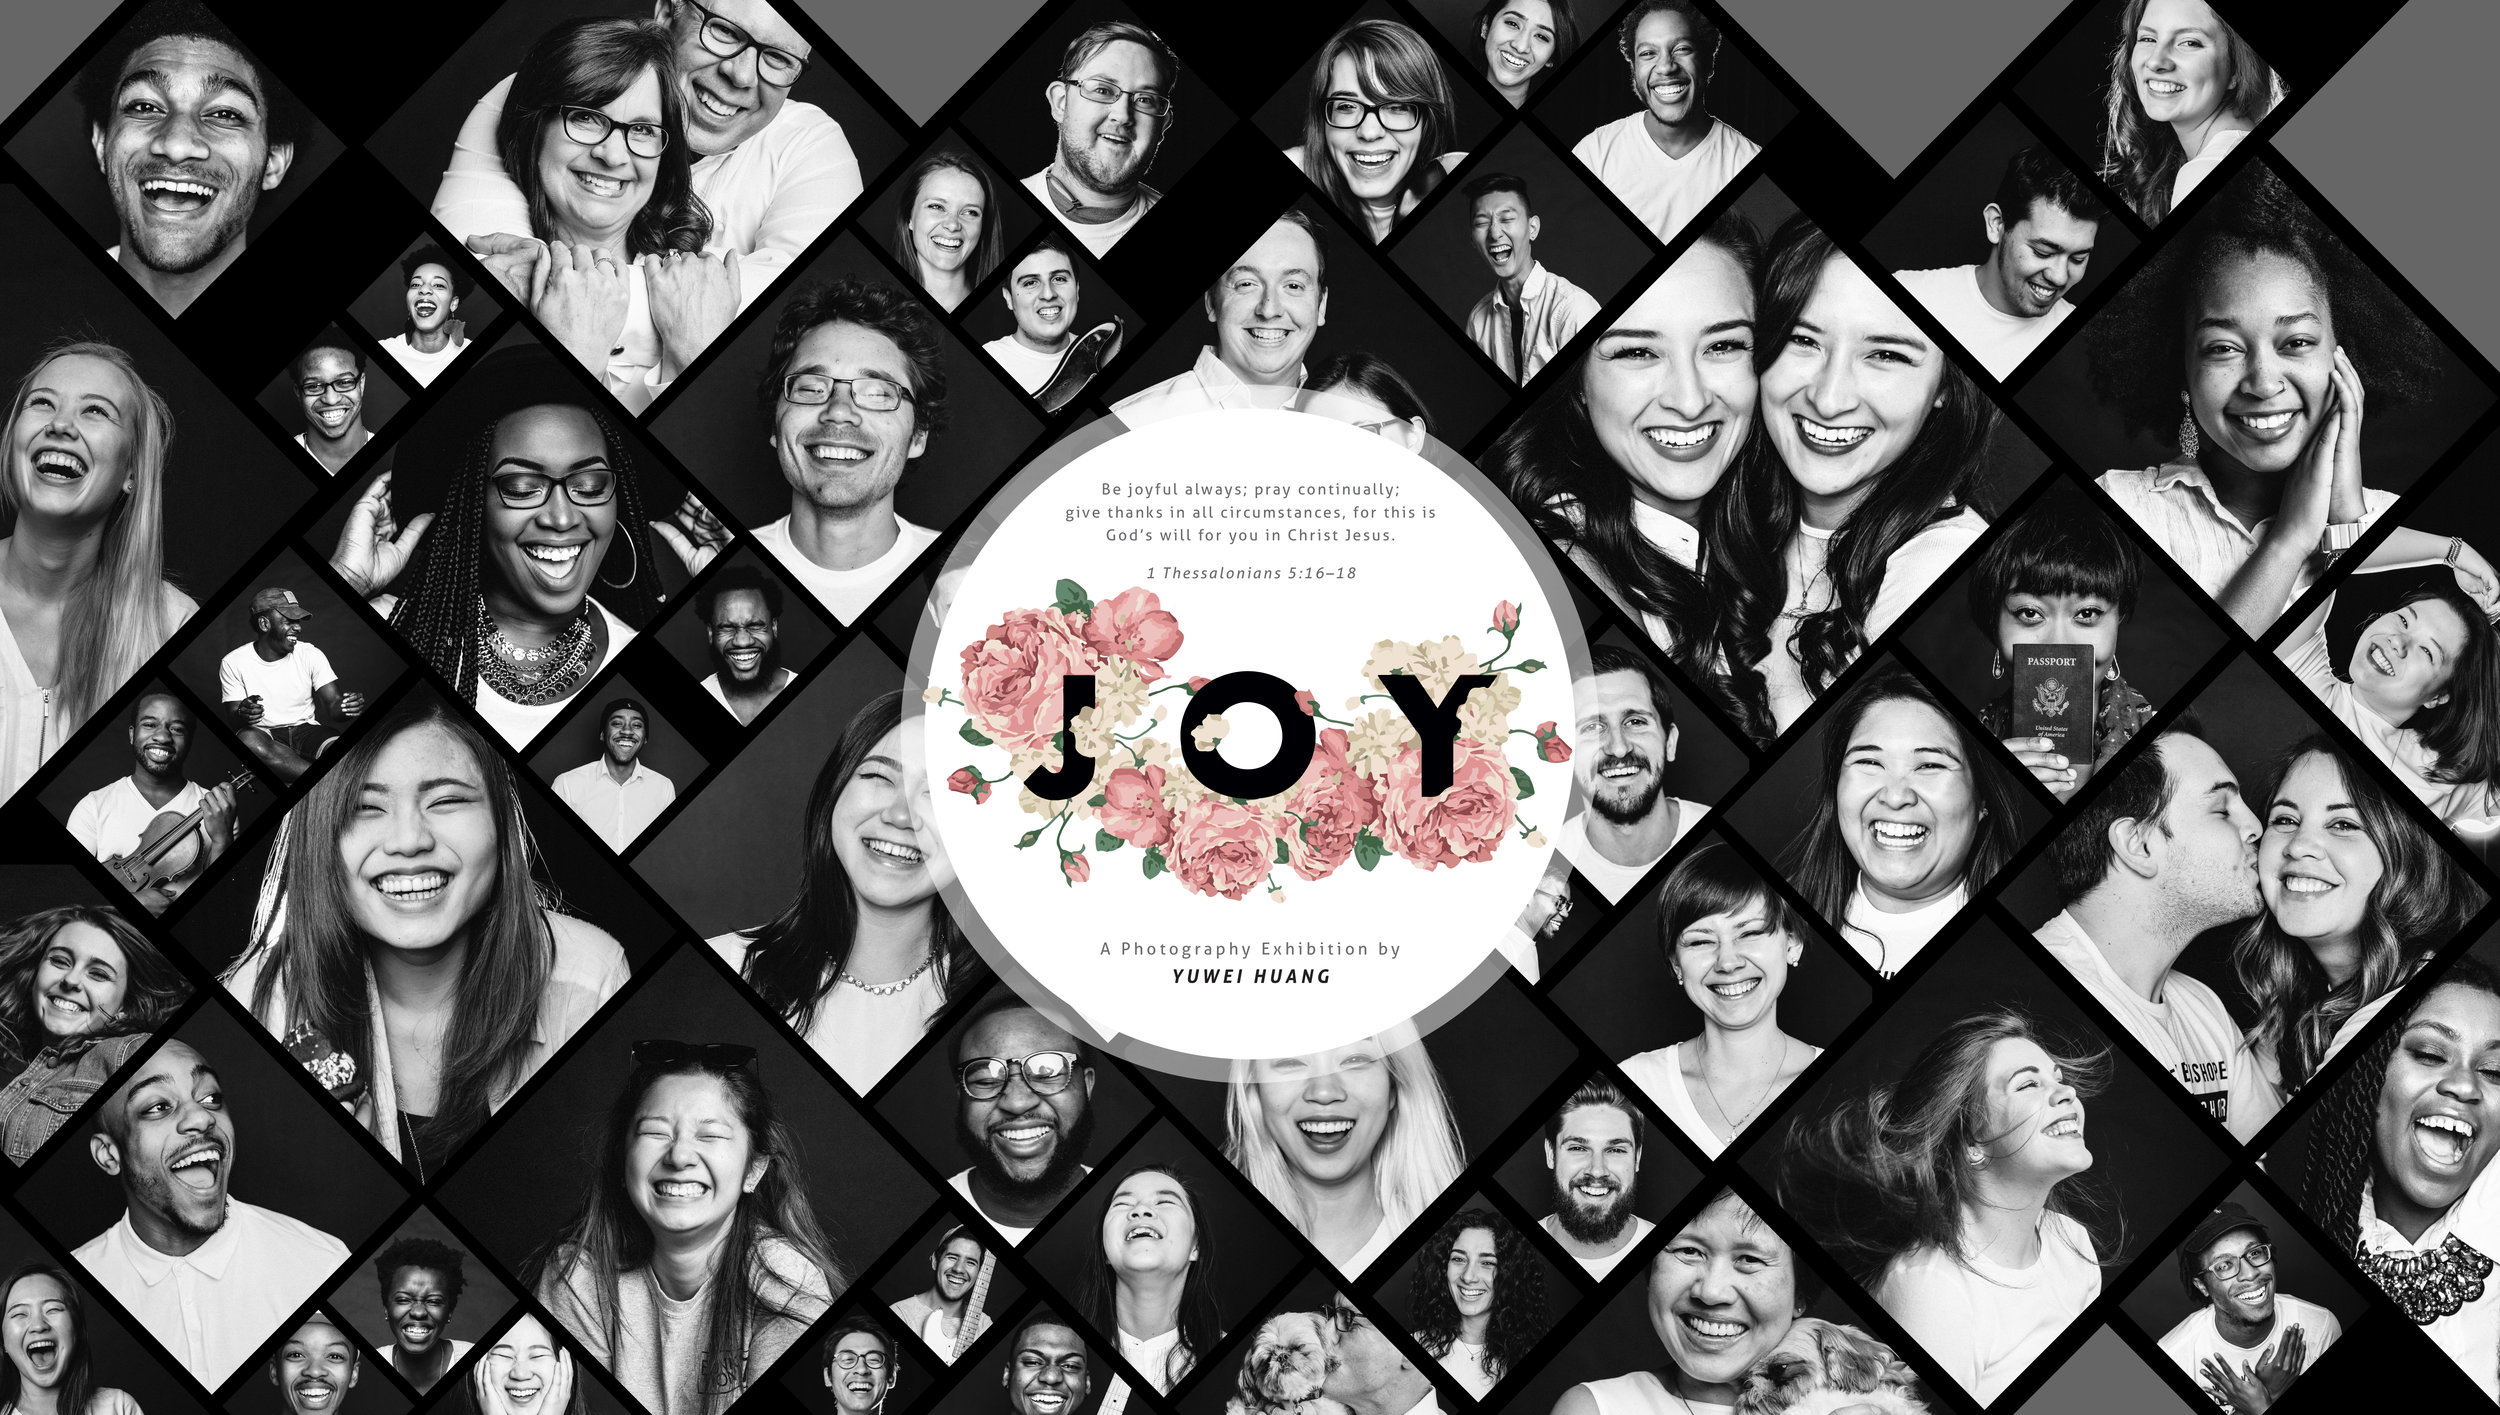 Joy-Poster-resized-squarespace.jpg